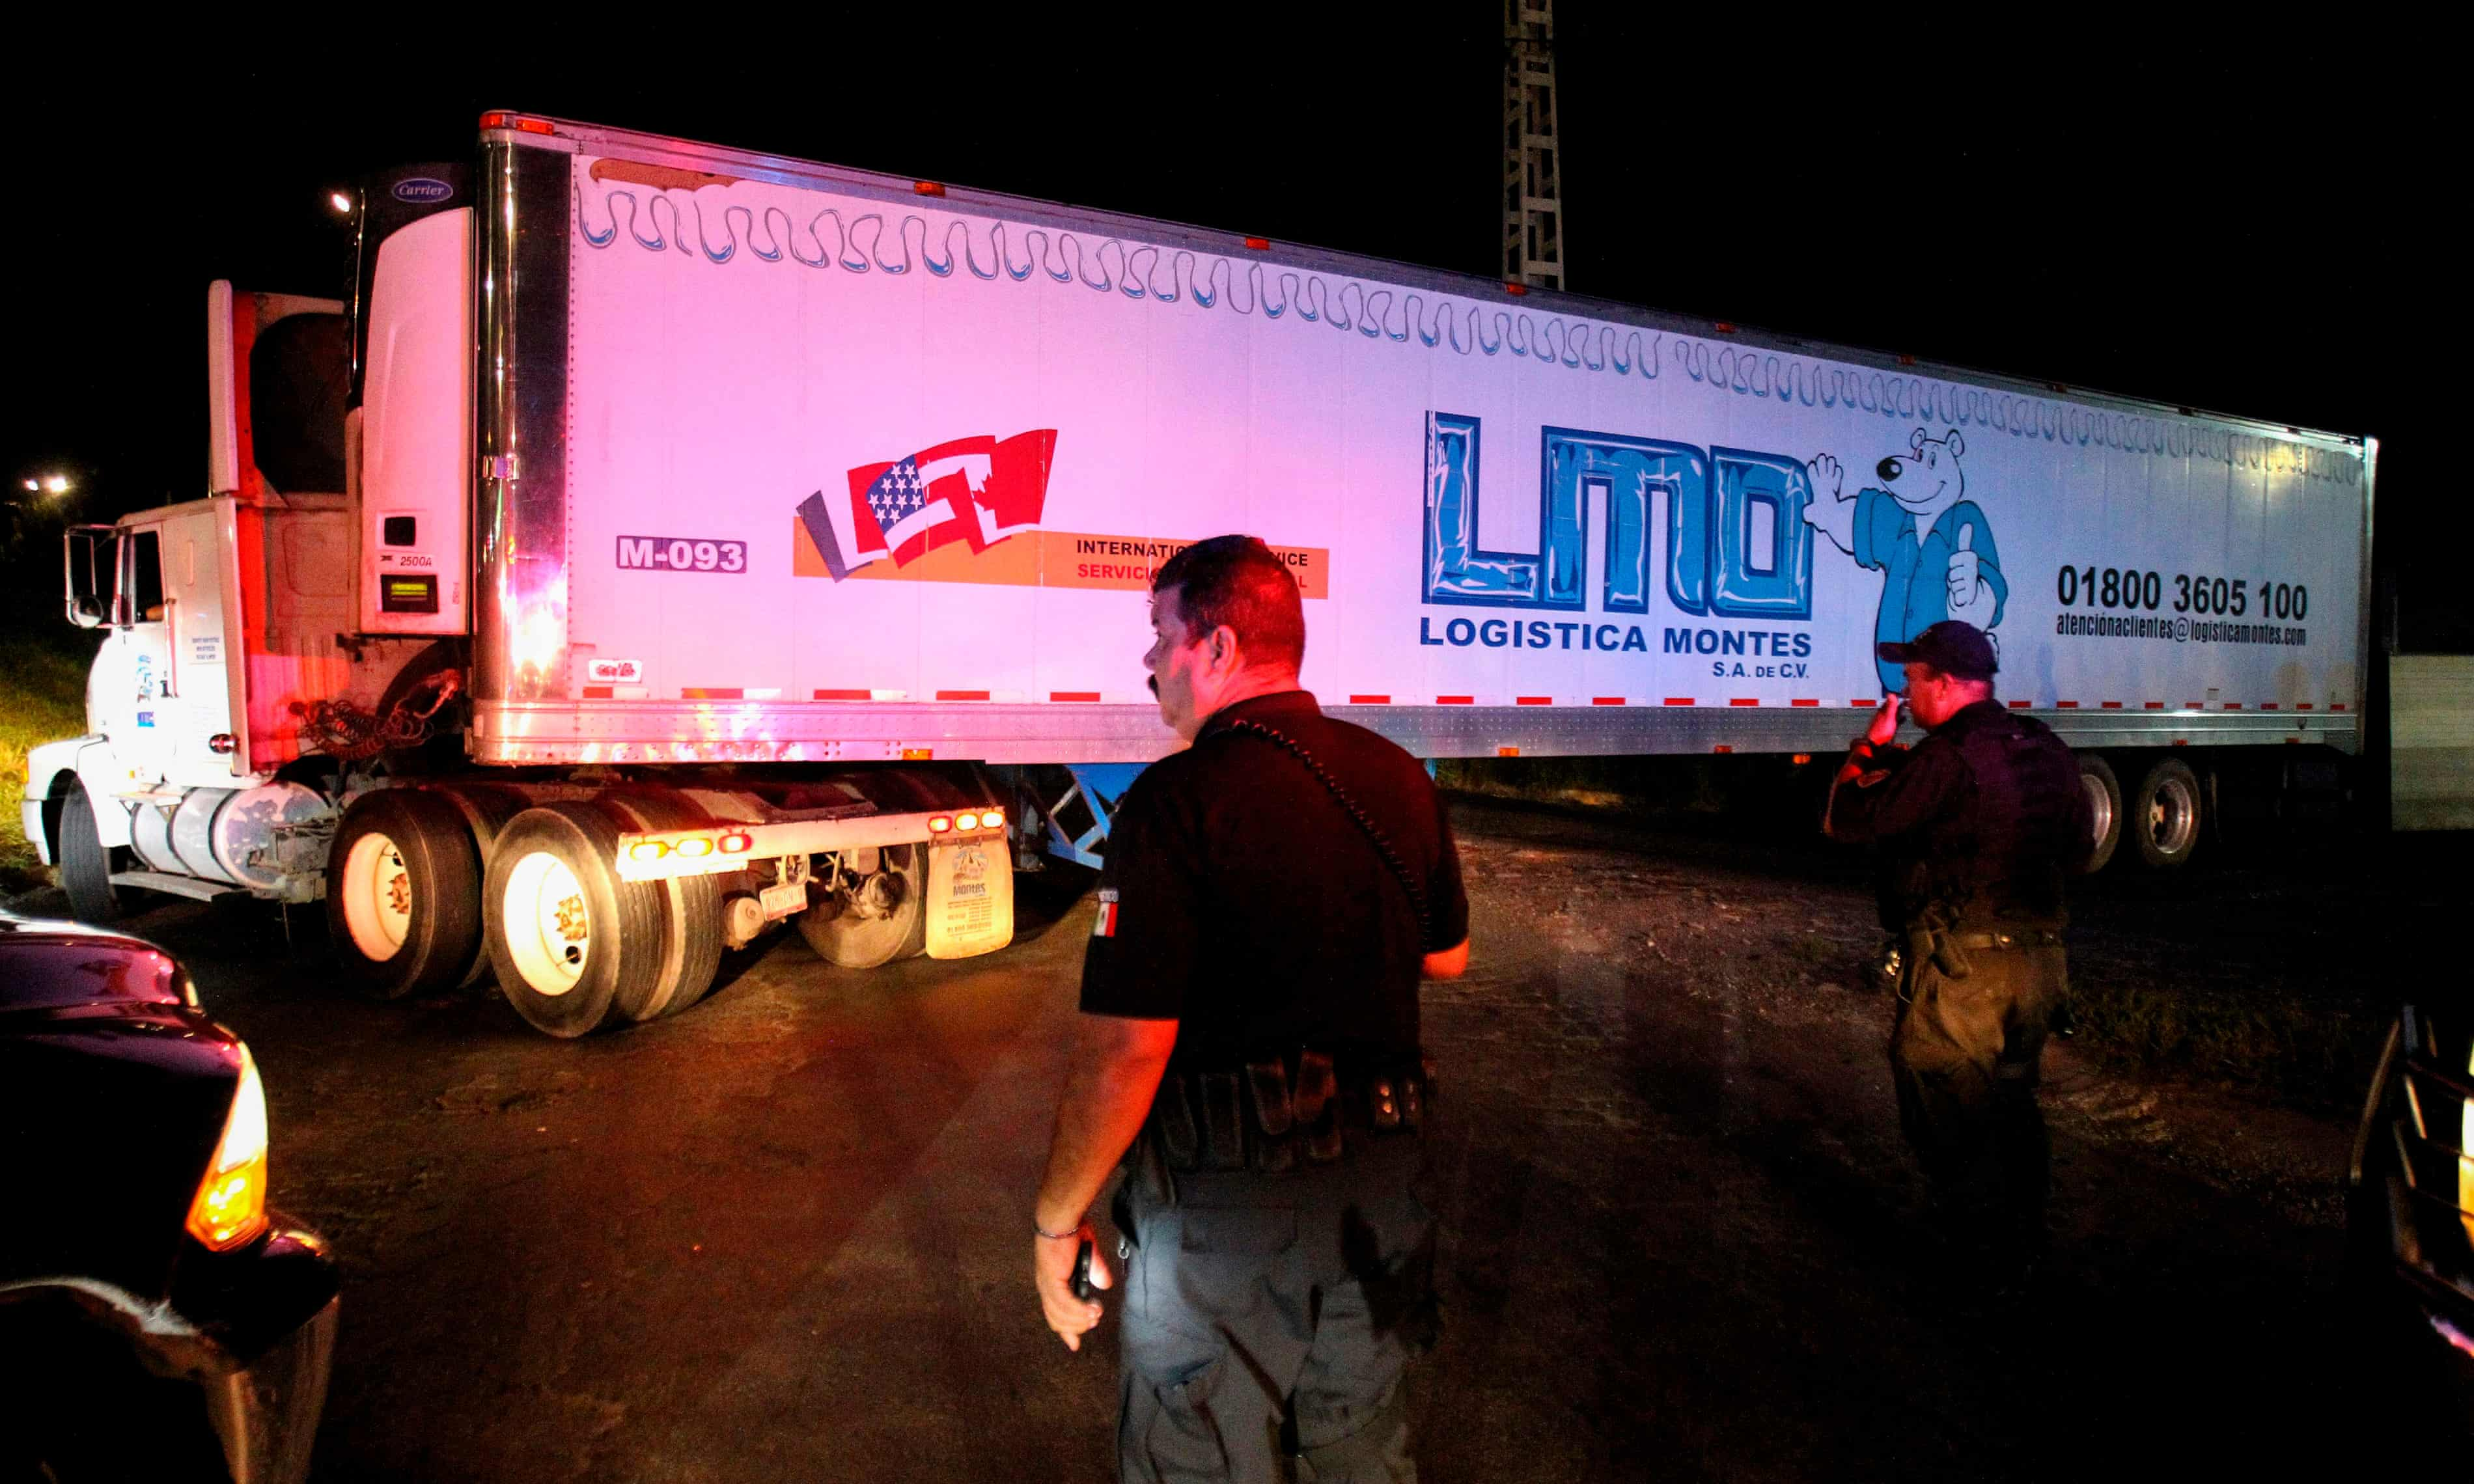 'A smell of death:' Mexico's truck of corpses highlights drug war crisis